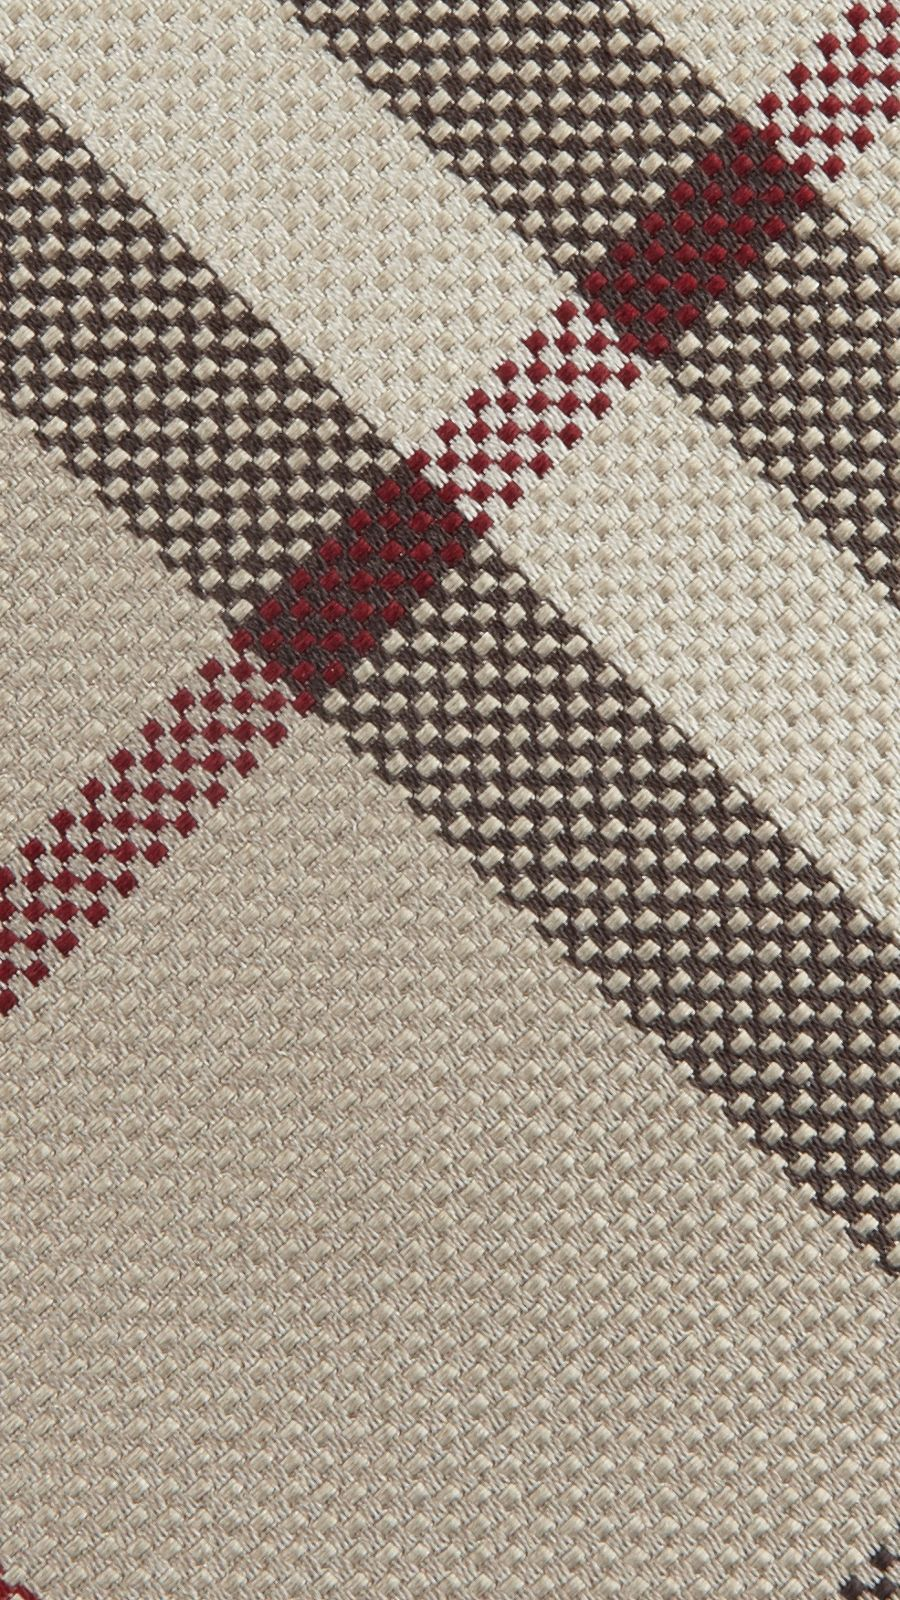 Smoked trench Modern Cut Check Silk Tie - Image 2